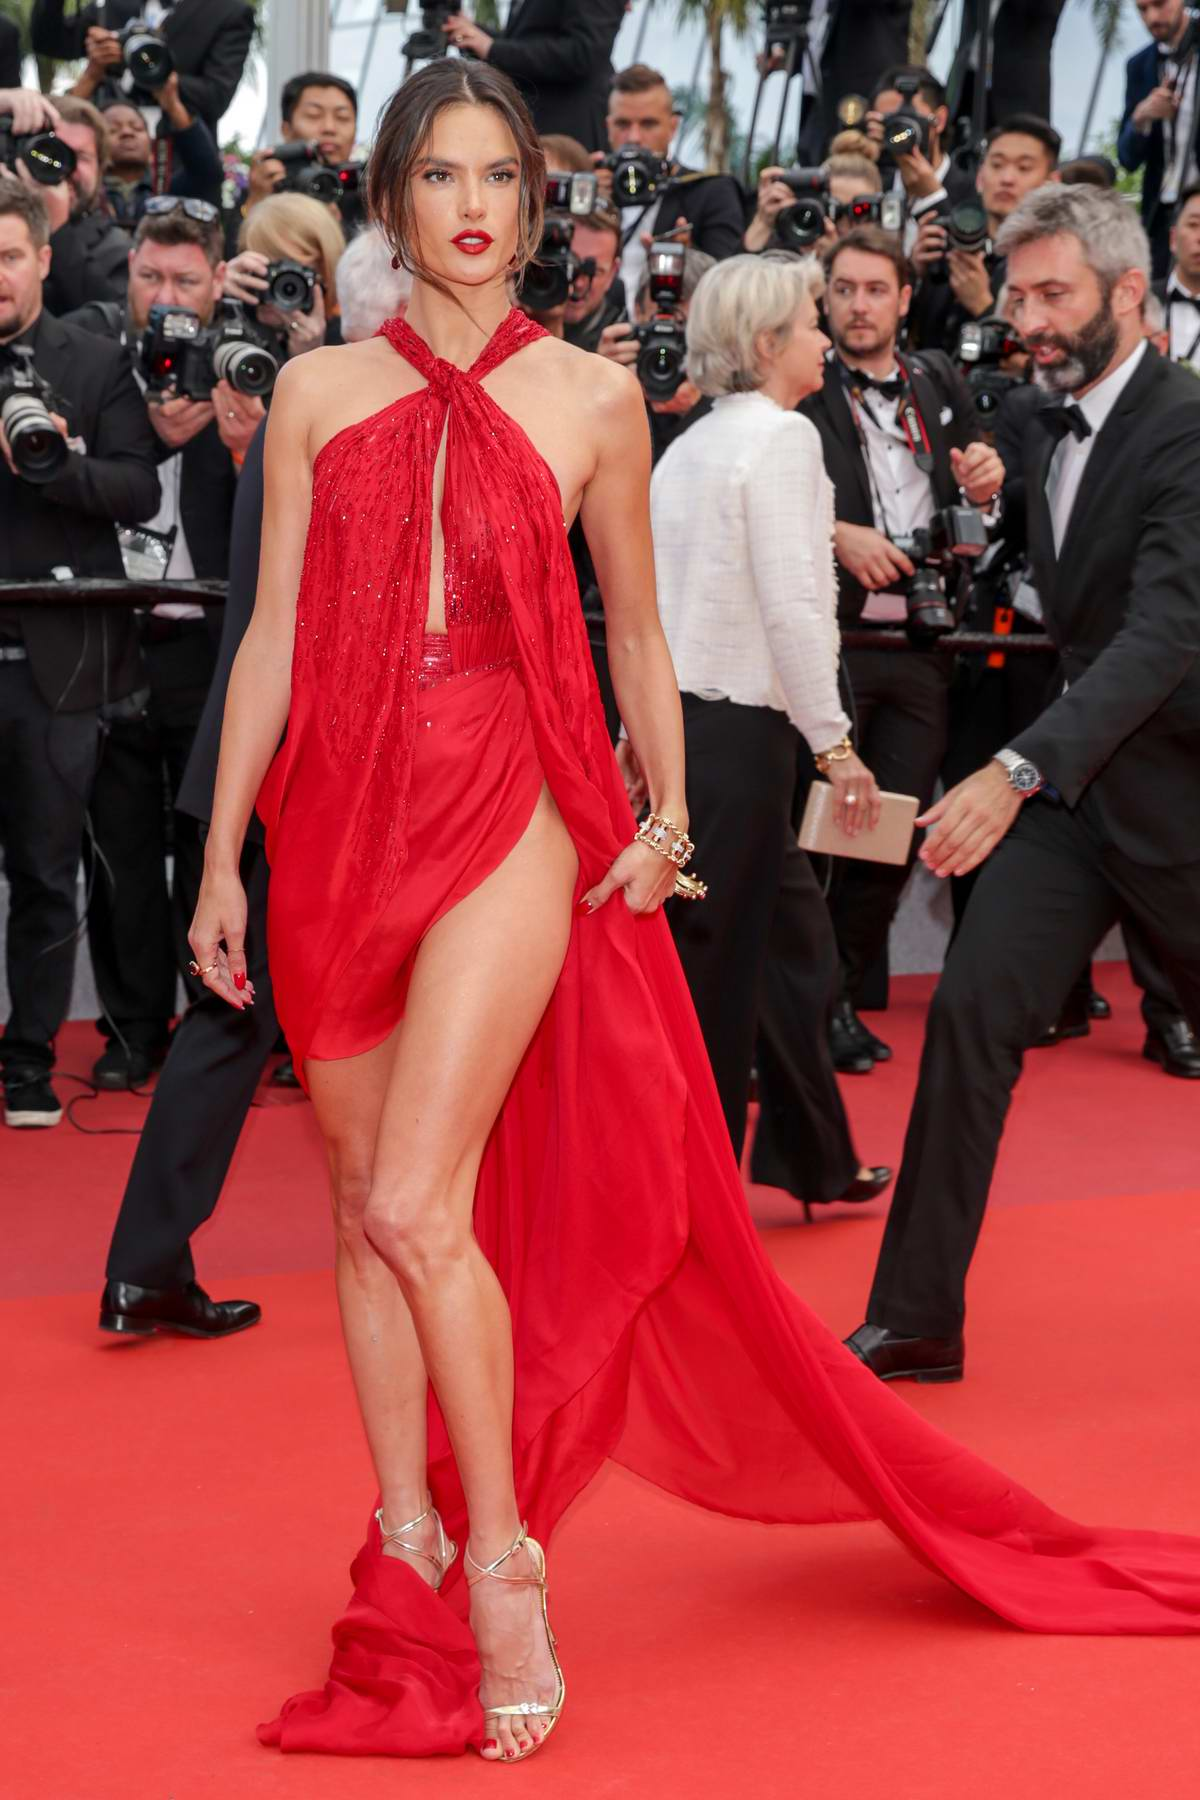 Alessandra Ambrosio attends the screening of 'Les Miserables' during the 72nd annual Cannes Film Festival in Cannes, France